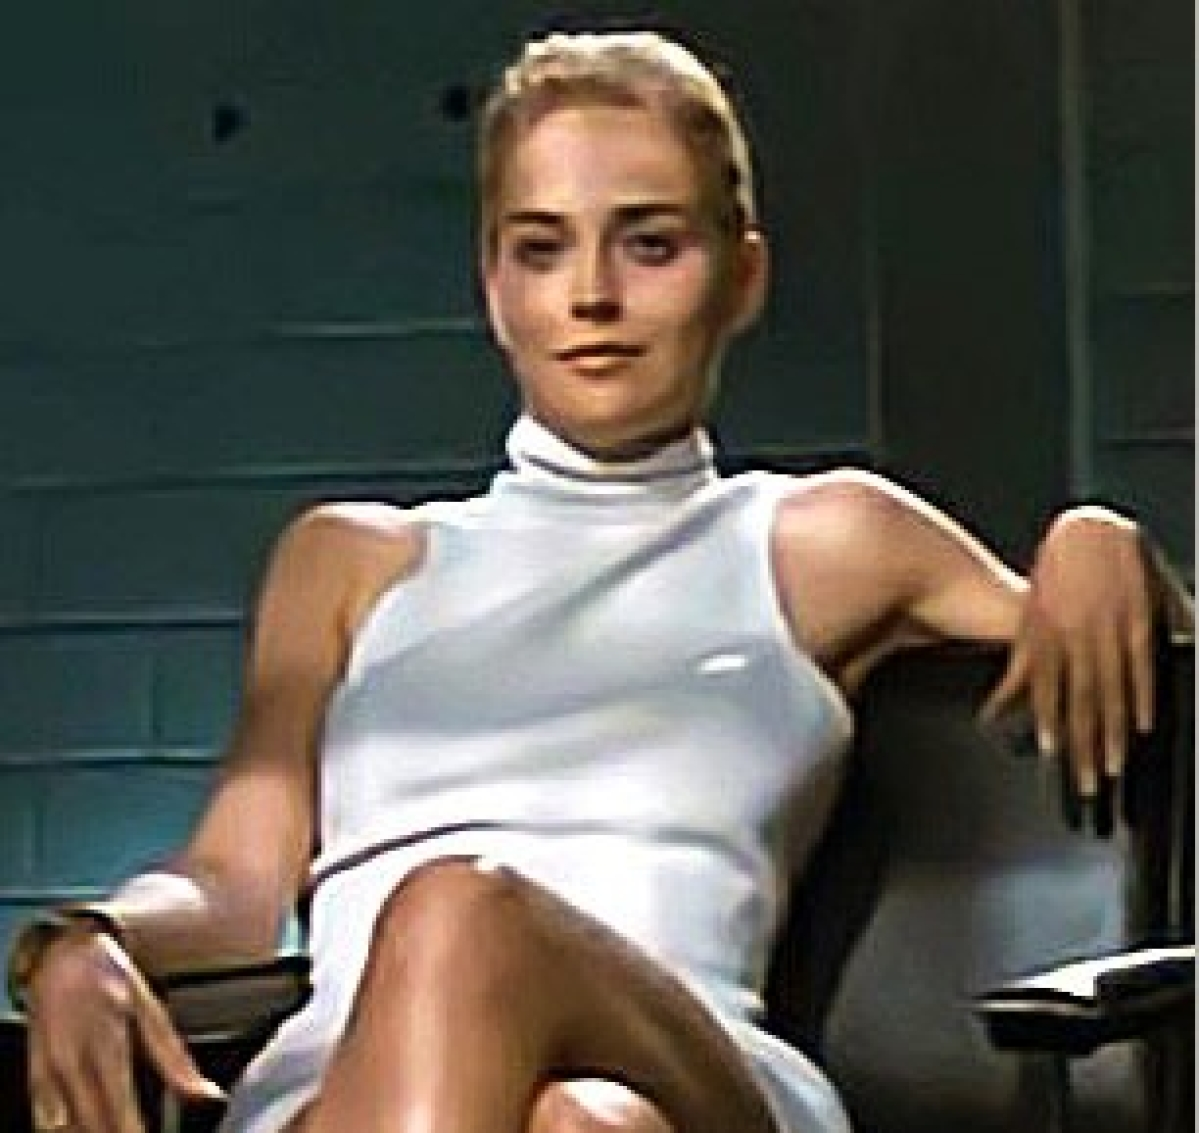 Sharon Stone's `Basic Instinct` named most erotic movie of all time